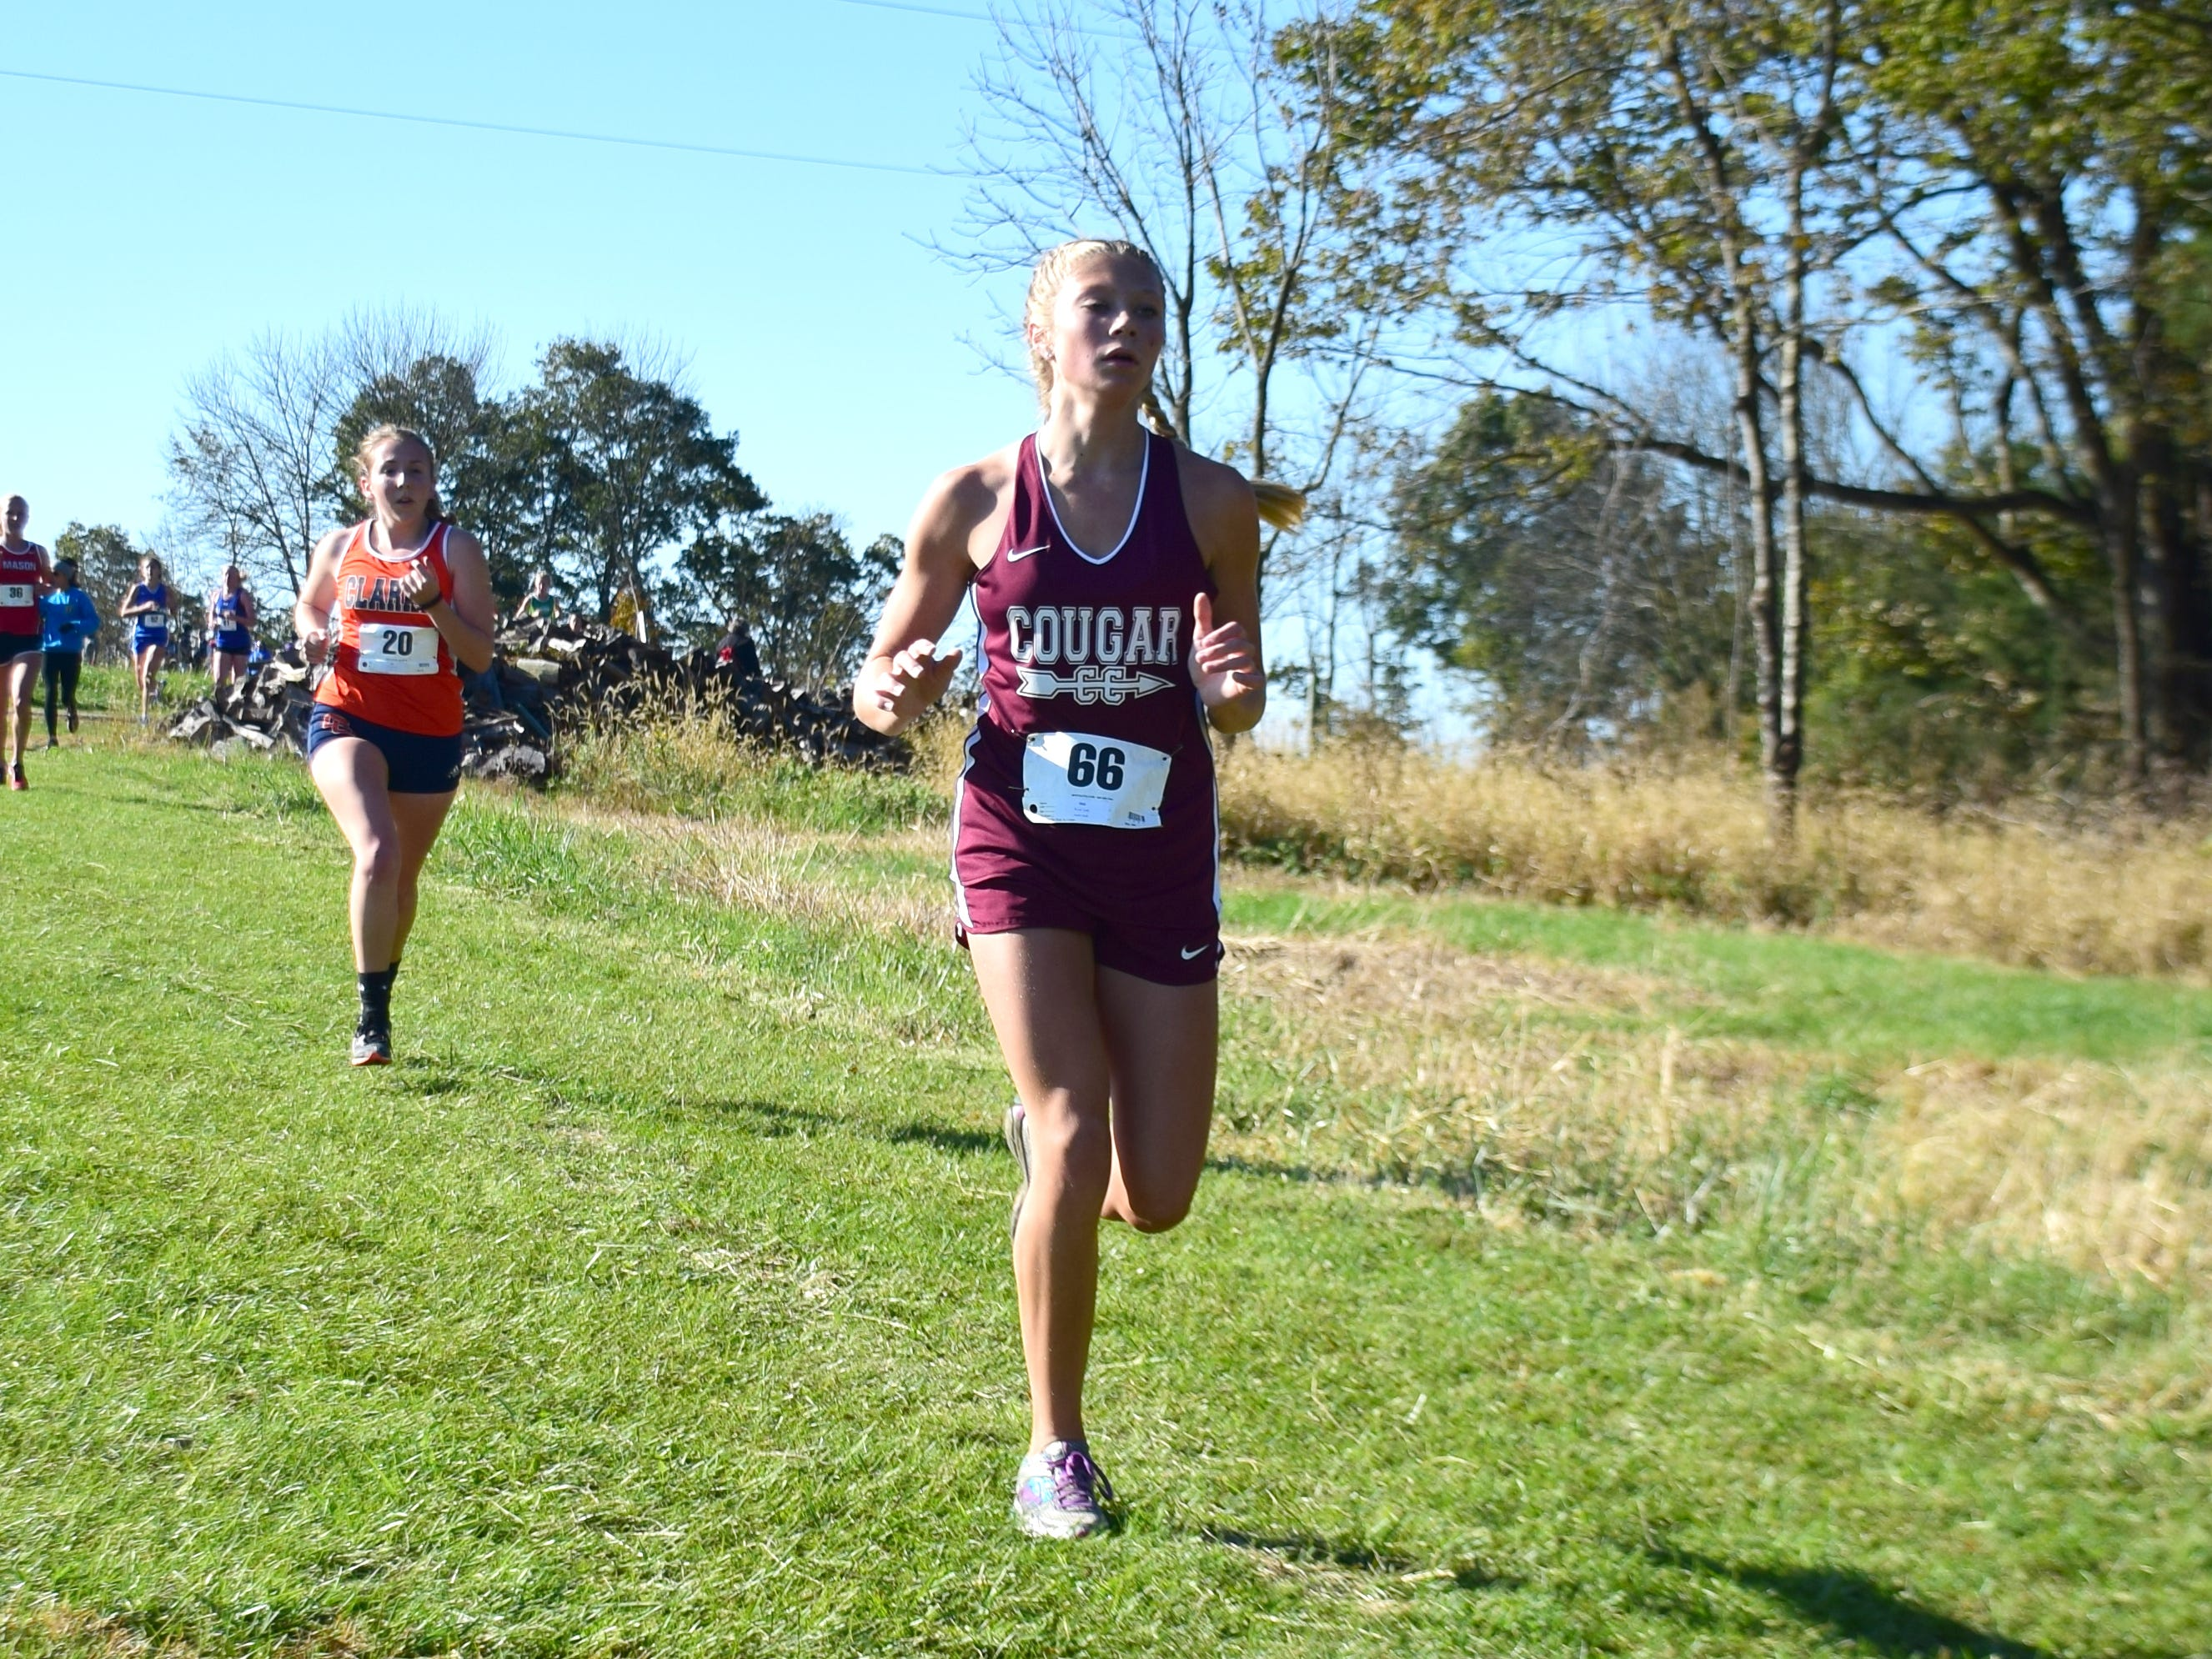 Stuarts Draft's Leah Wood competes in the girls race at the VHSL Class 2, Region B Cross Country Championships on Tuesday, Oct. 30, 2018, at New Market Battlefield Park in New Market, Va.